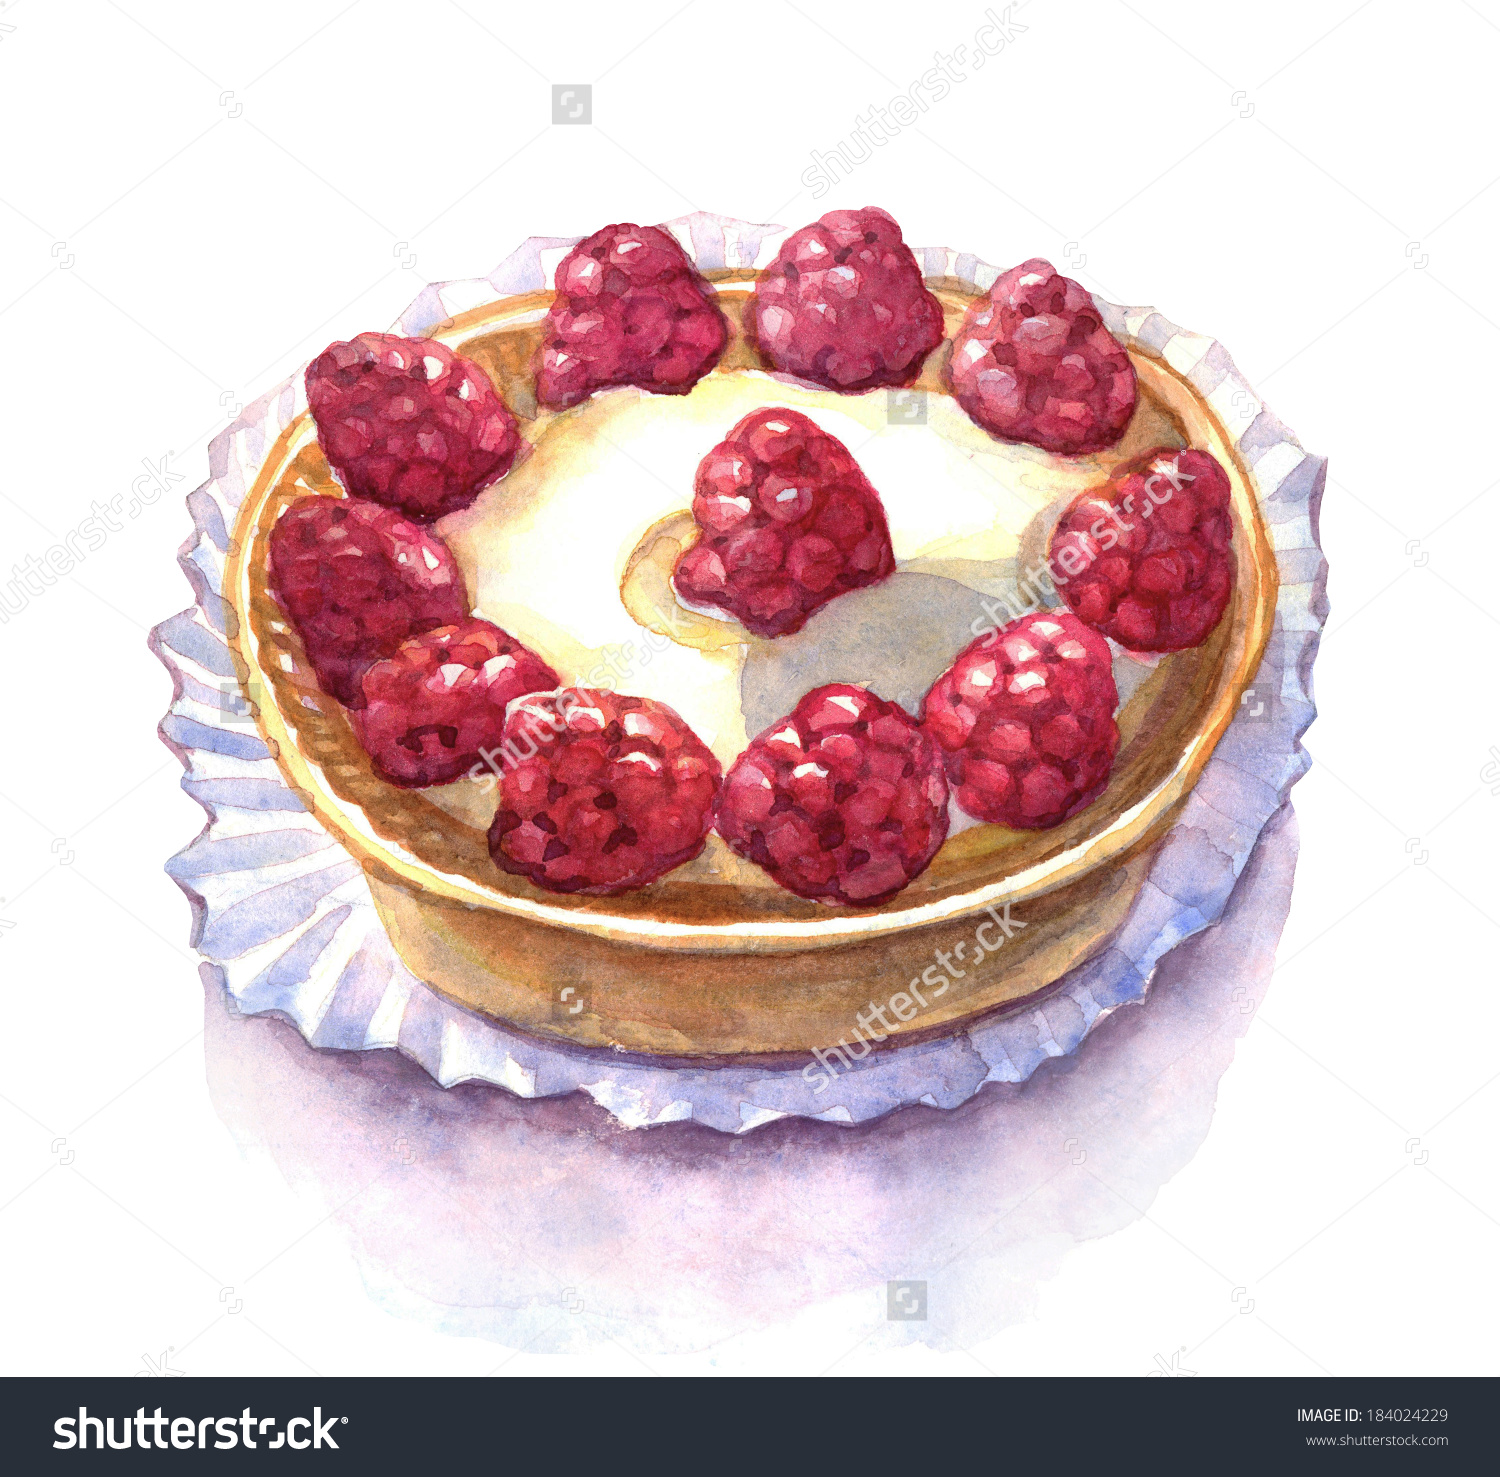 Raspberry Tart Watercolor Illustration Stock Illustration.